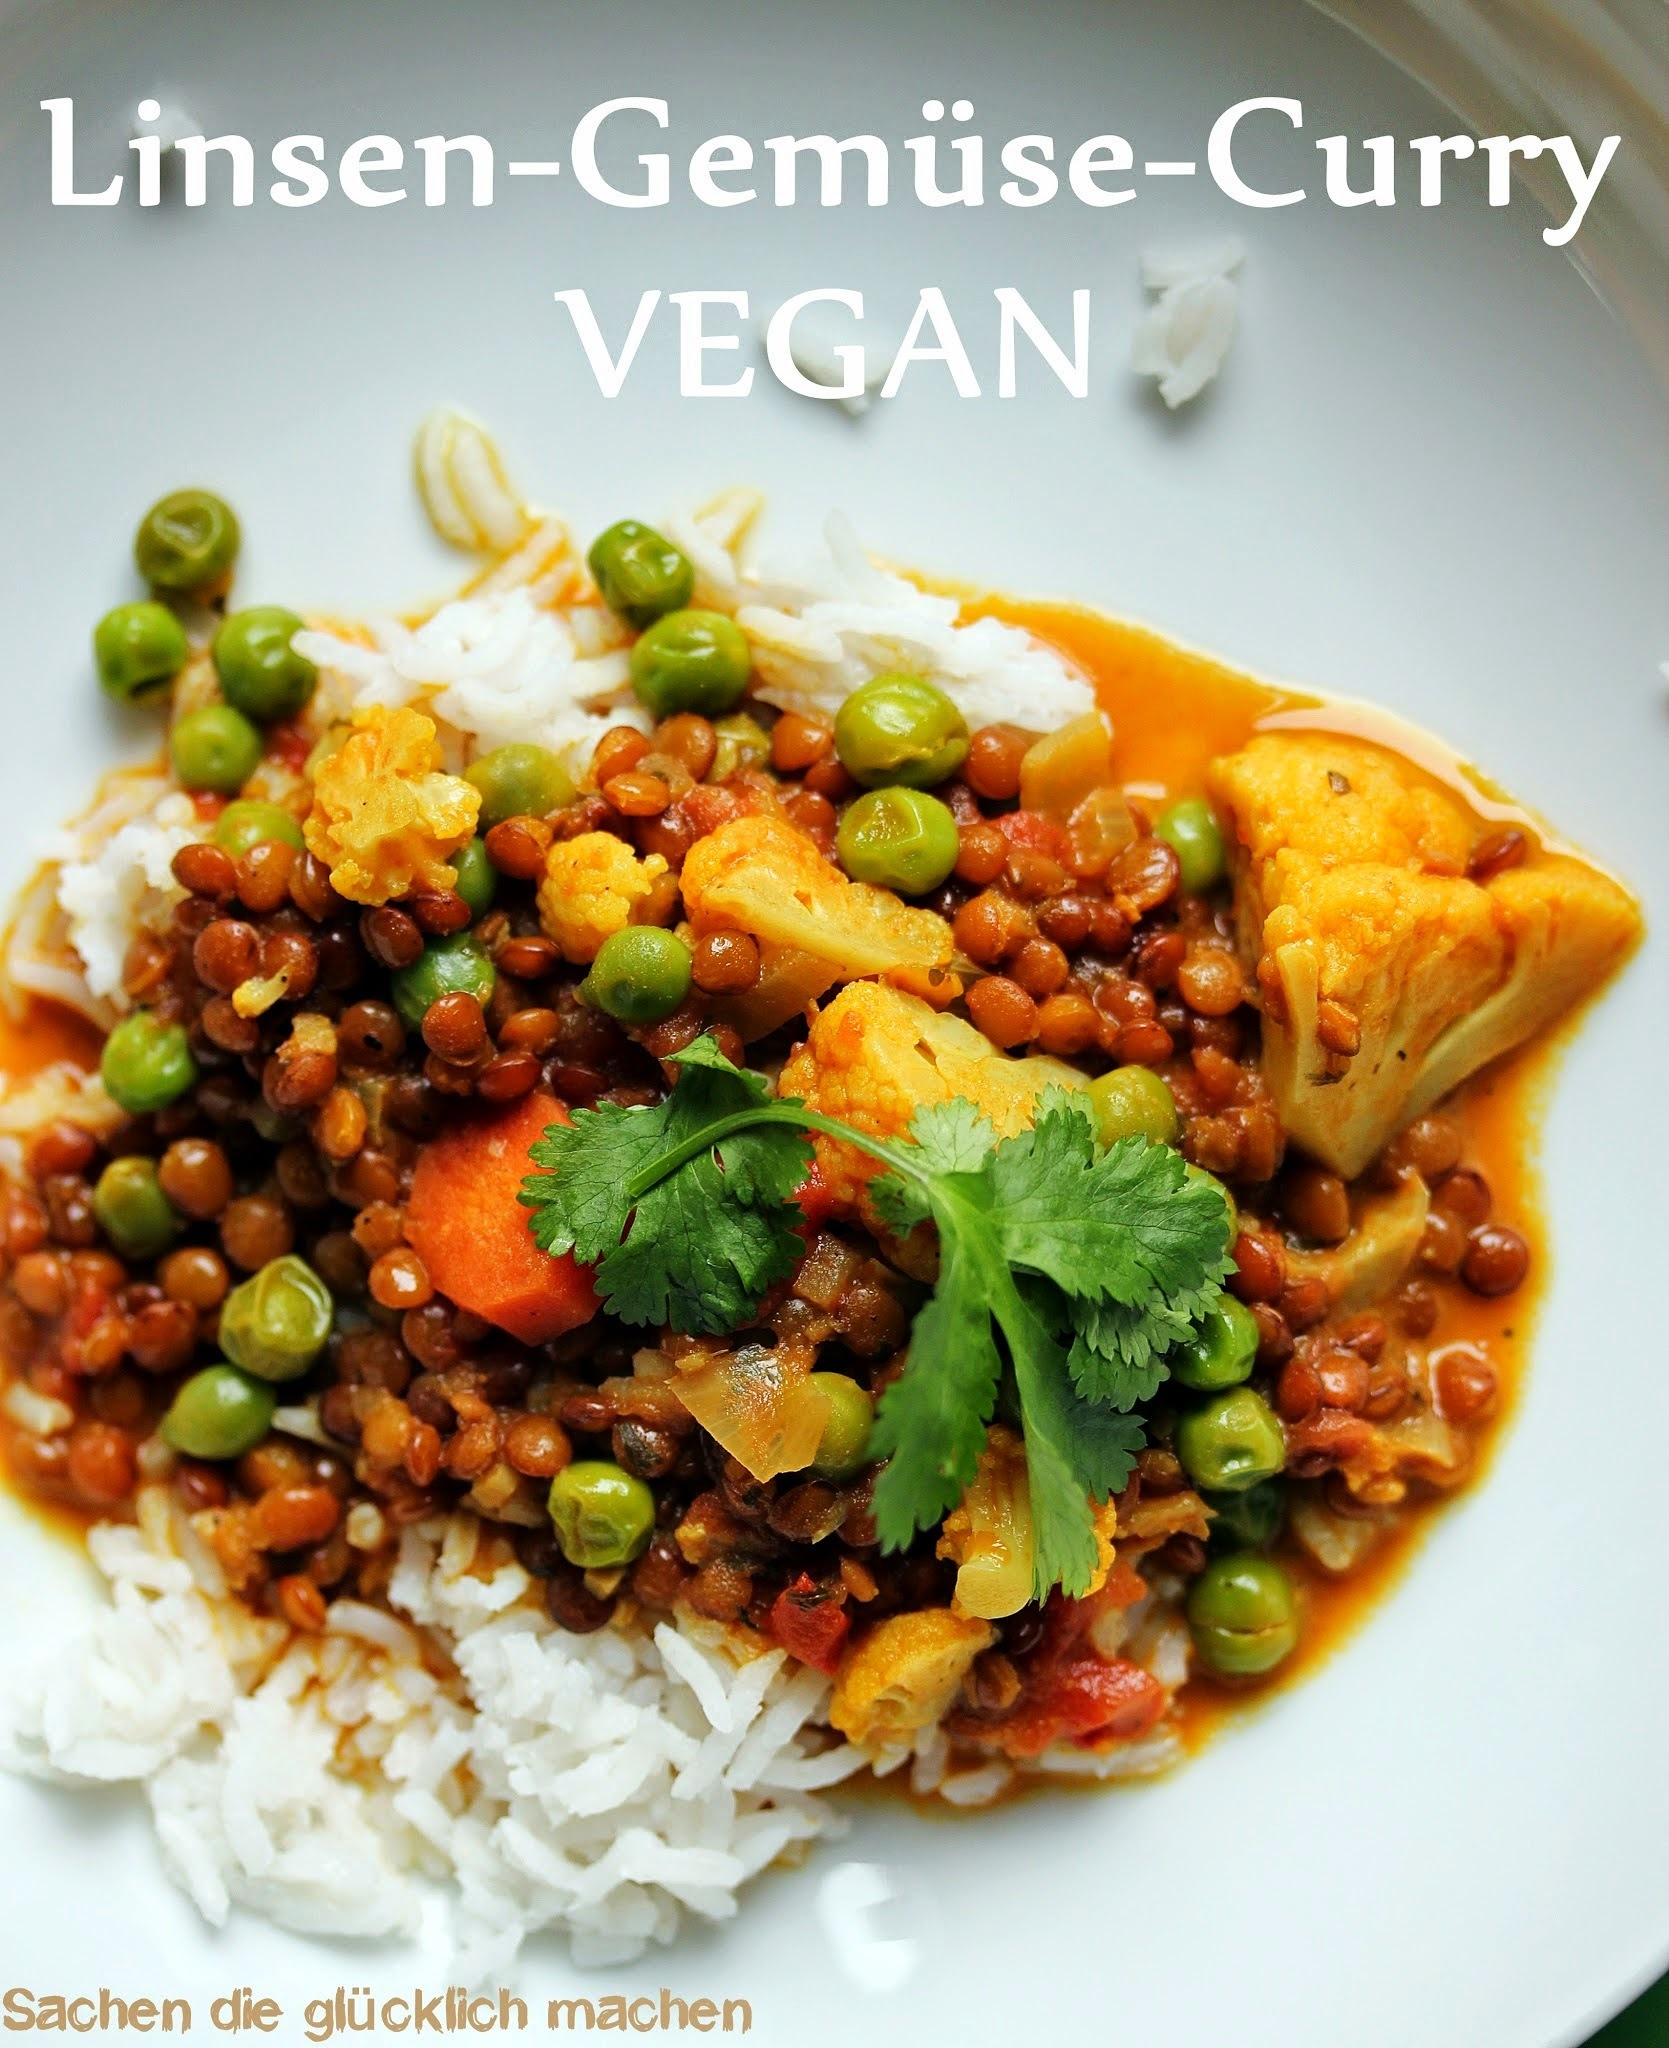 Linsen Gemüse Curry VEGAN